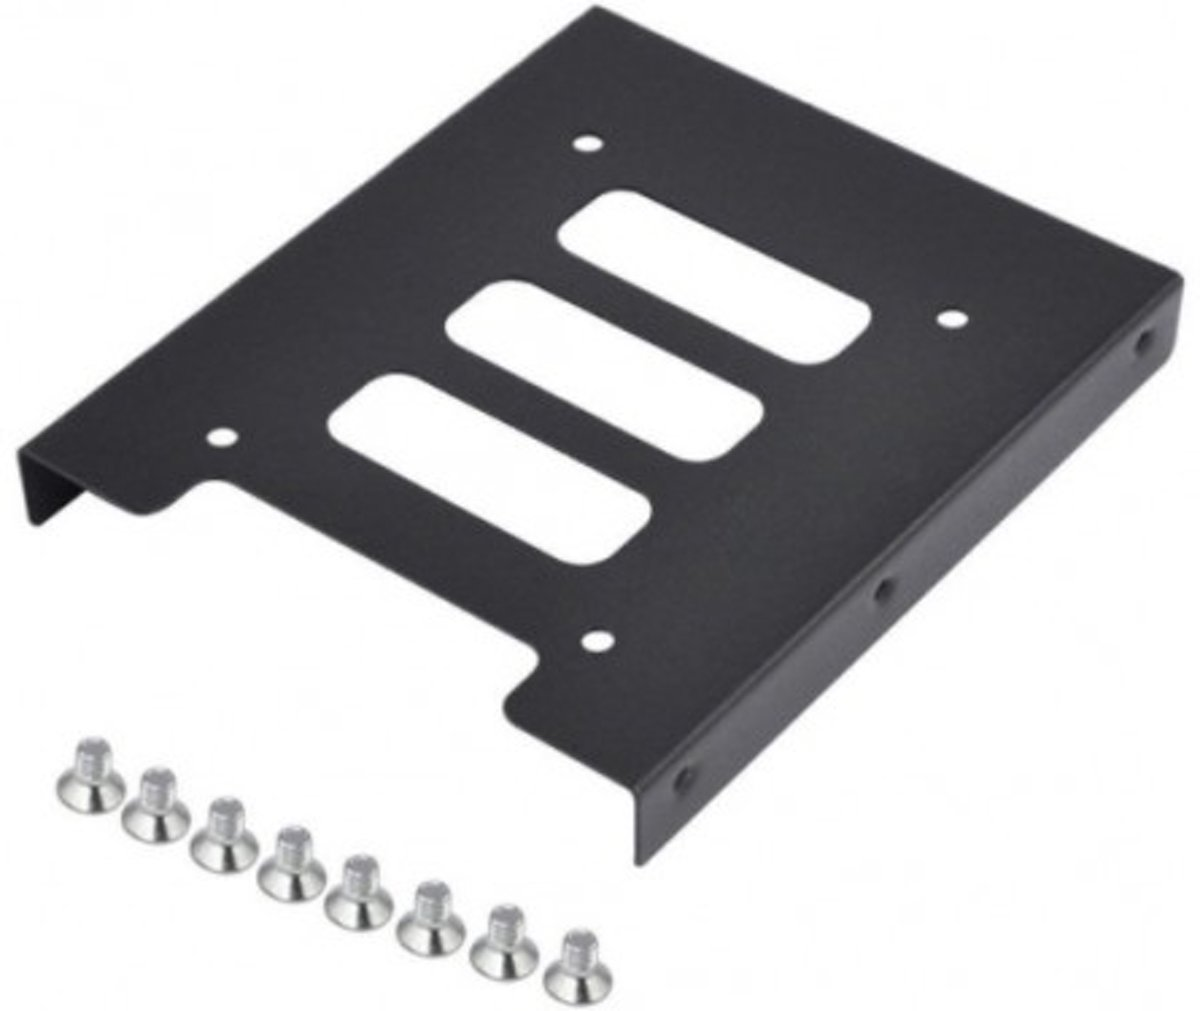 SSD Bracket adapter 2.5 inch naar 3.5 inch